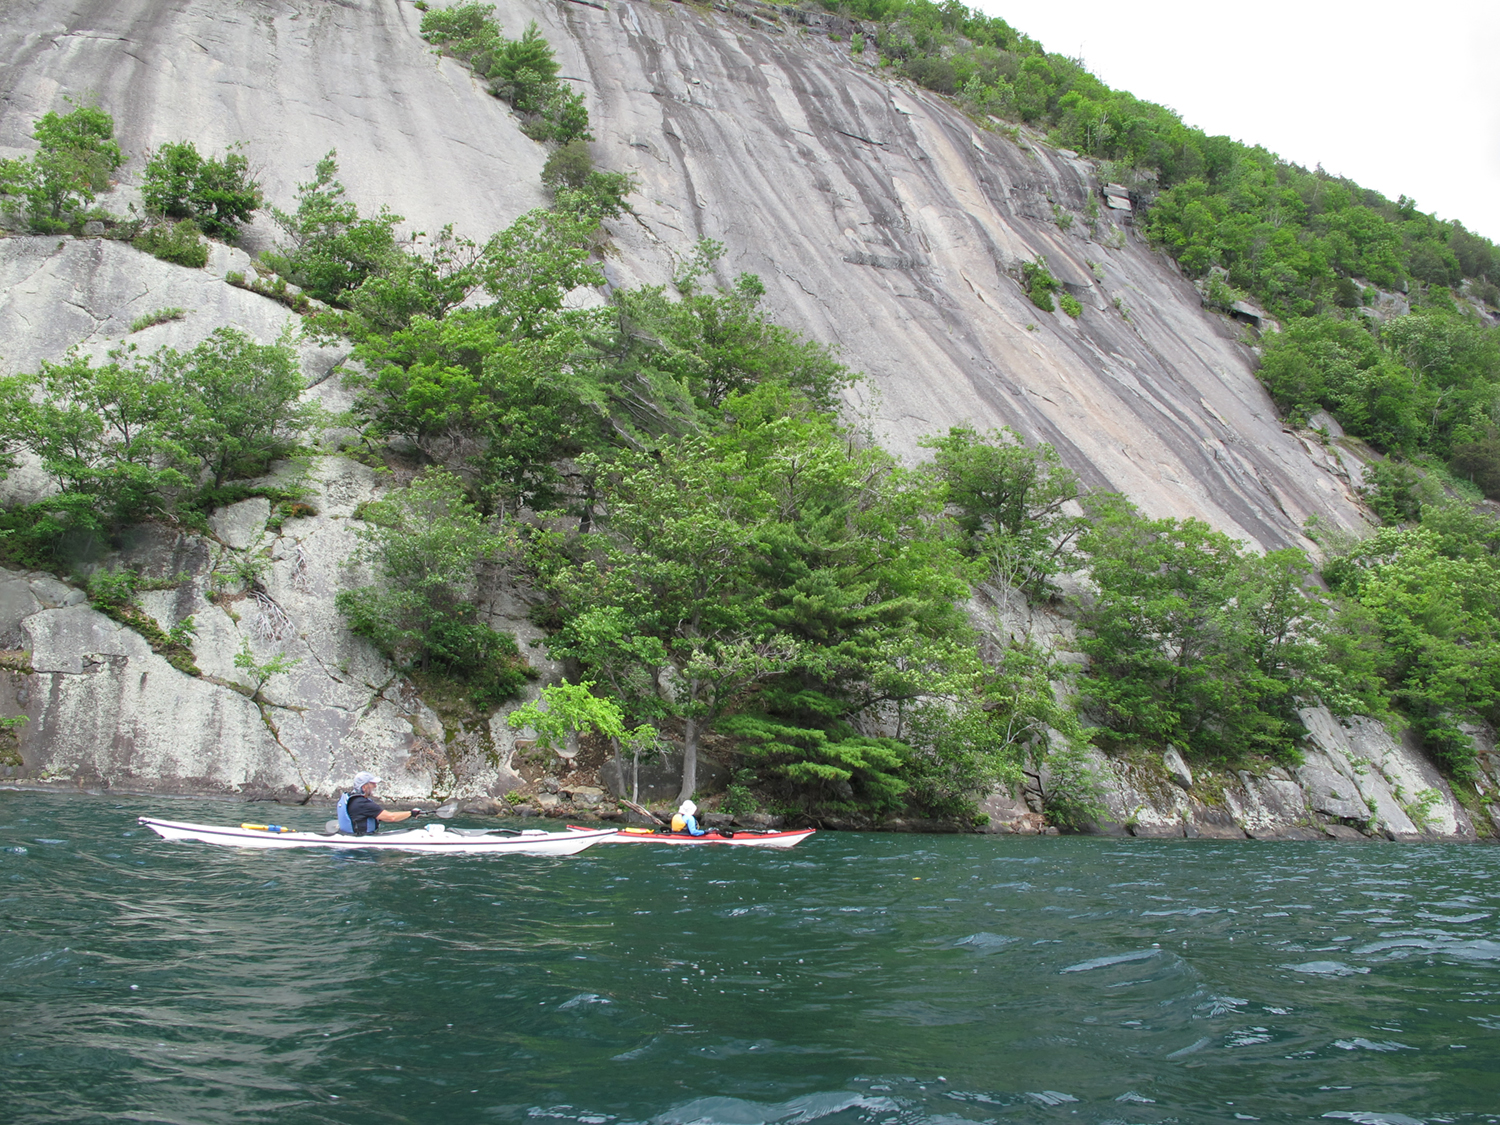 Julie Elson and Michael Kalin of Albany pass the face of Rogers Rock. Alan Mapes